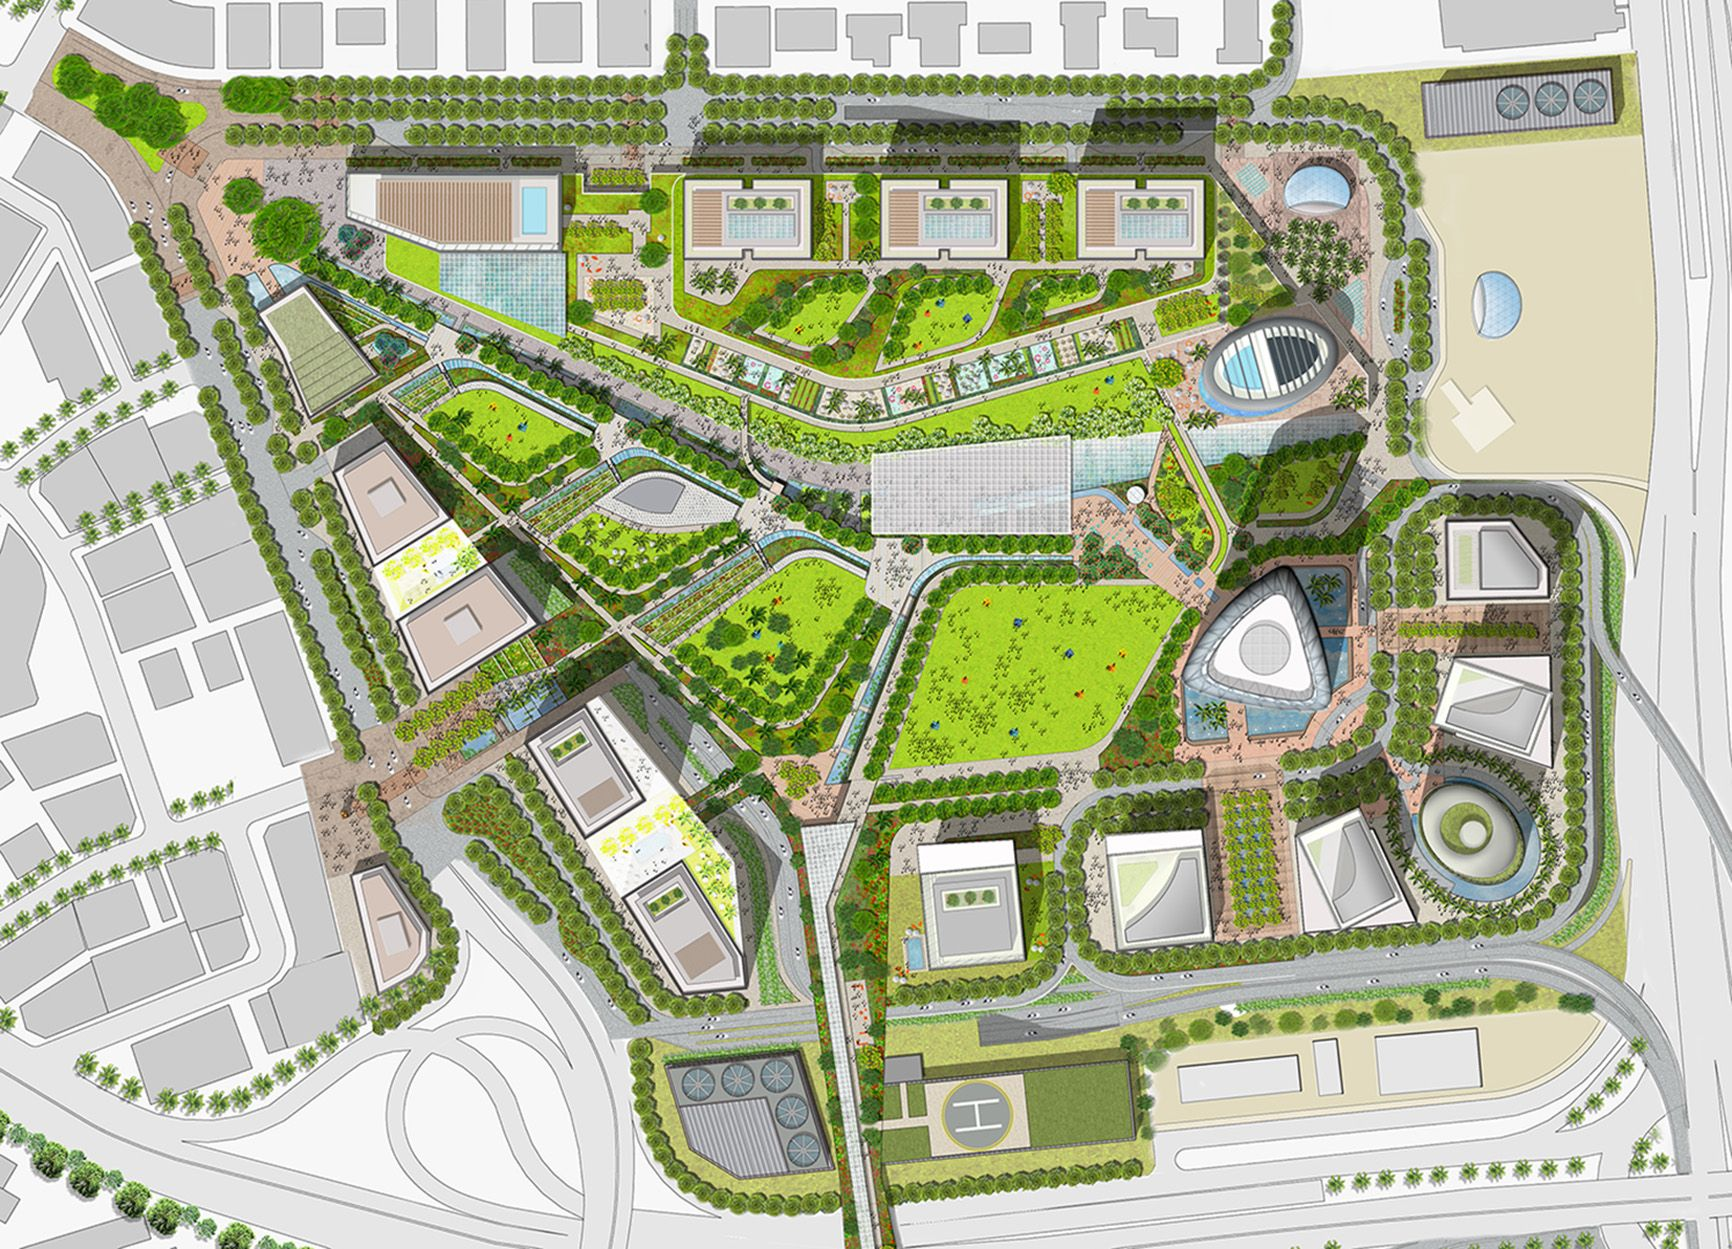 Case Study Of Design Of Globally Significant Civic Park And Public Realm By Uk Landscape Architec Landscape Architecture Drawing Landscape Design Uk Landscapes